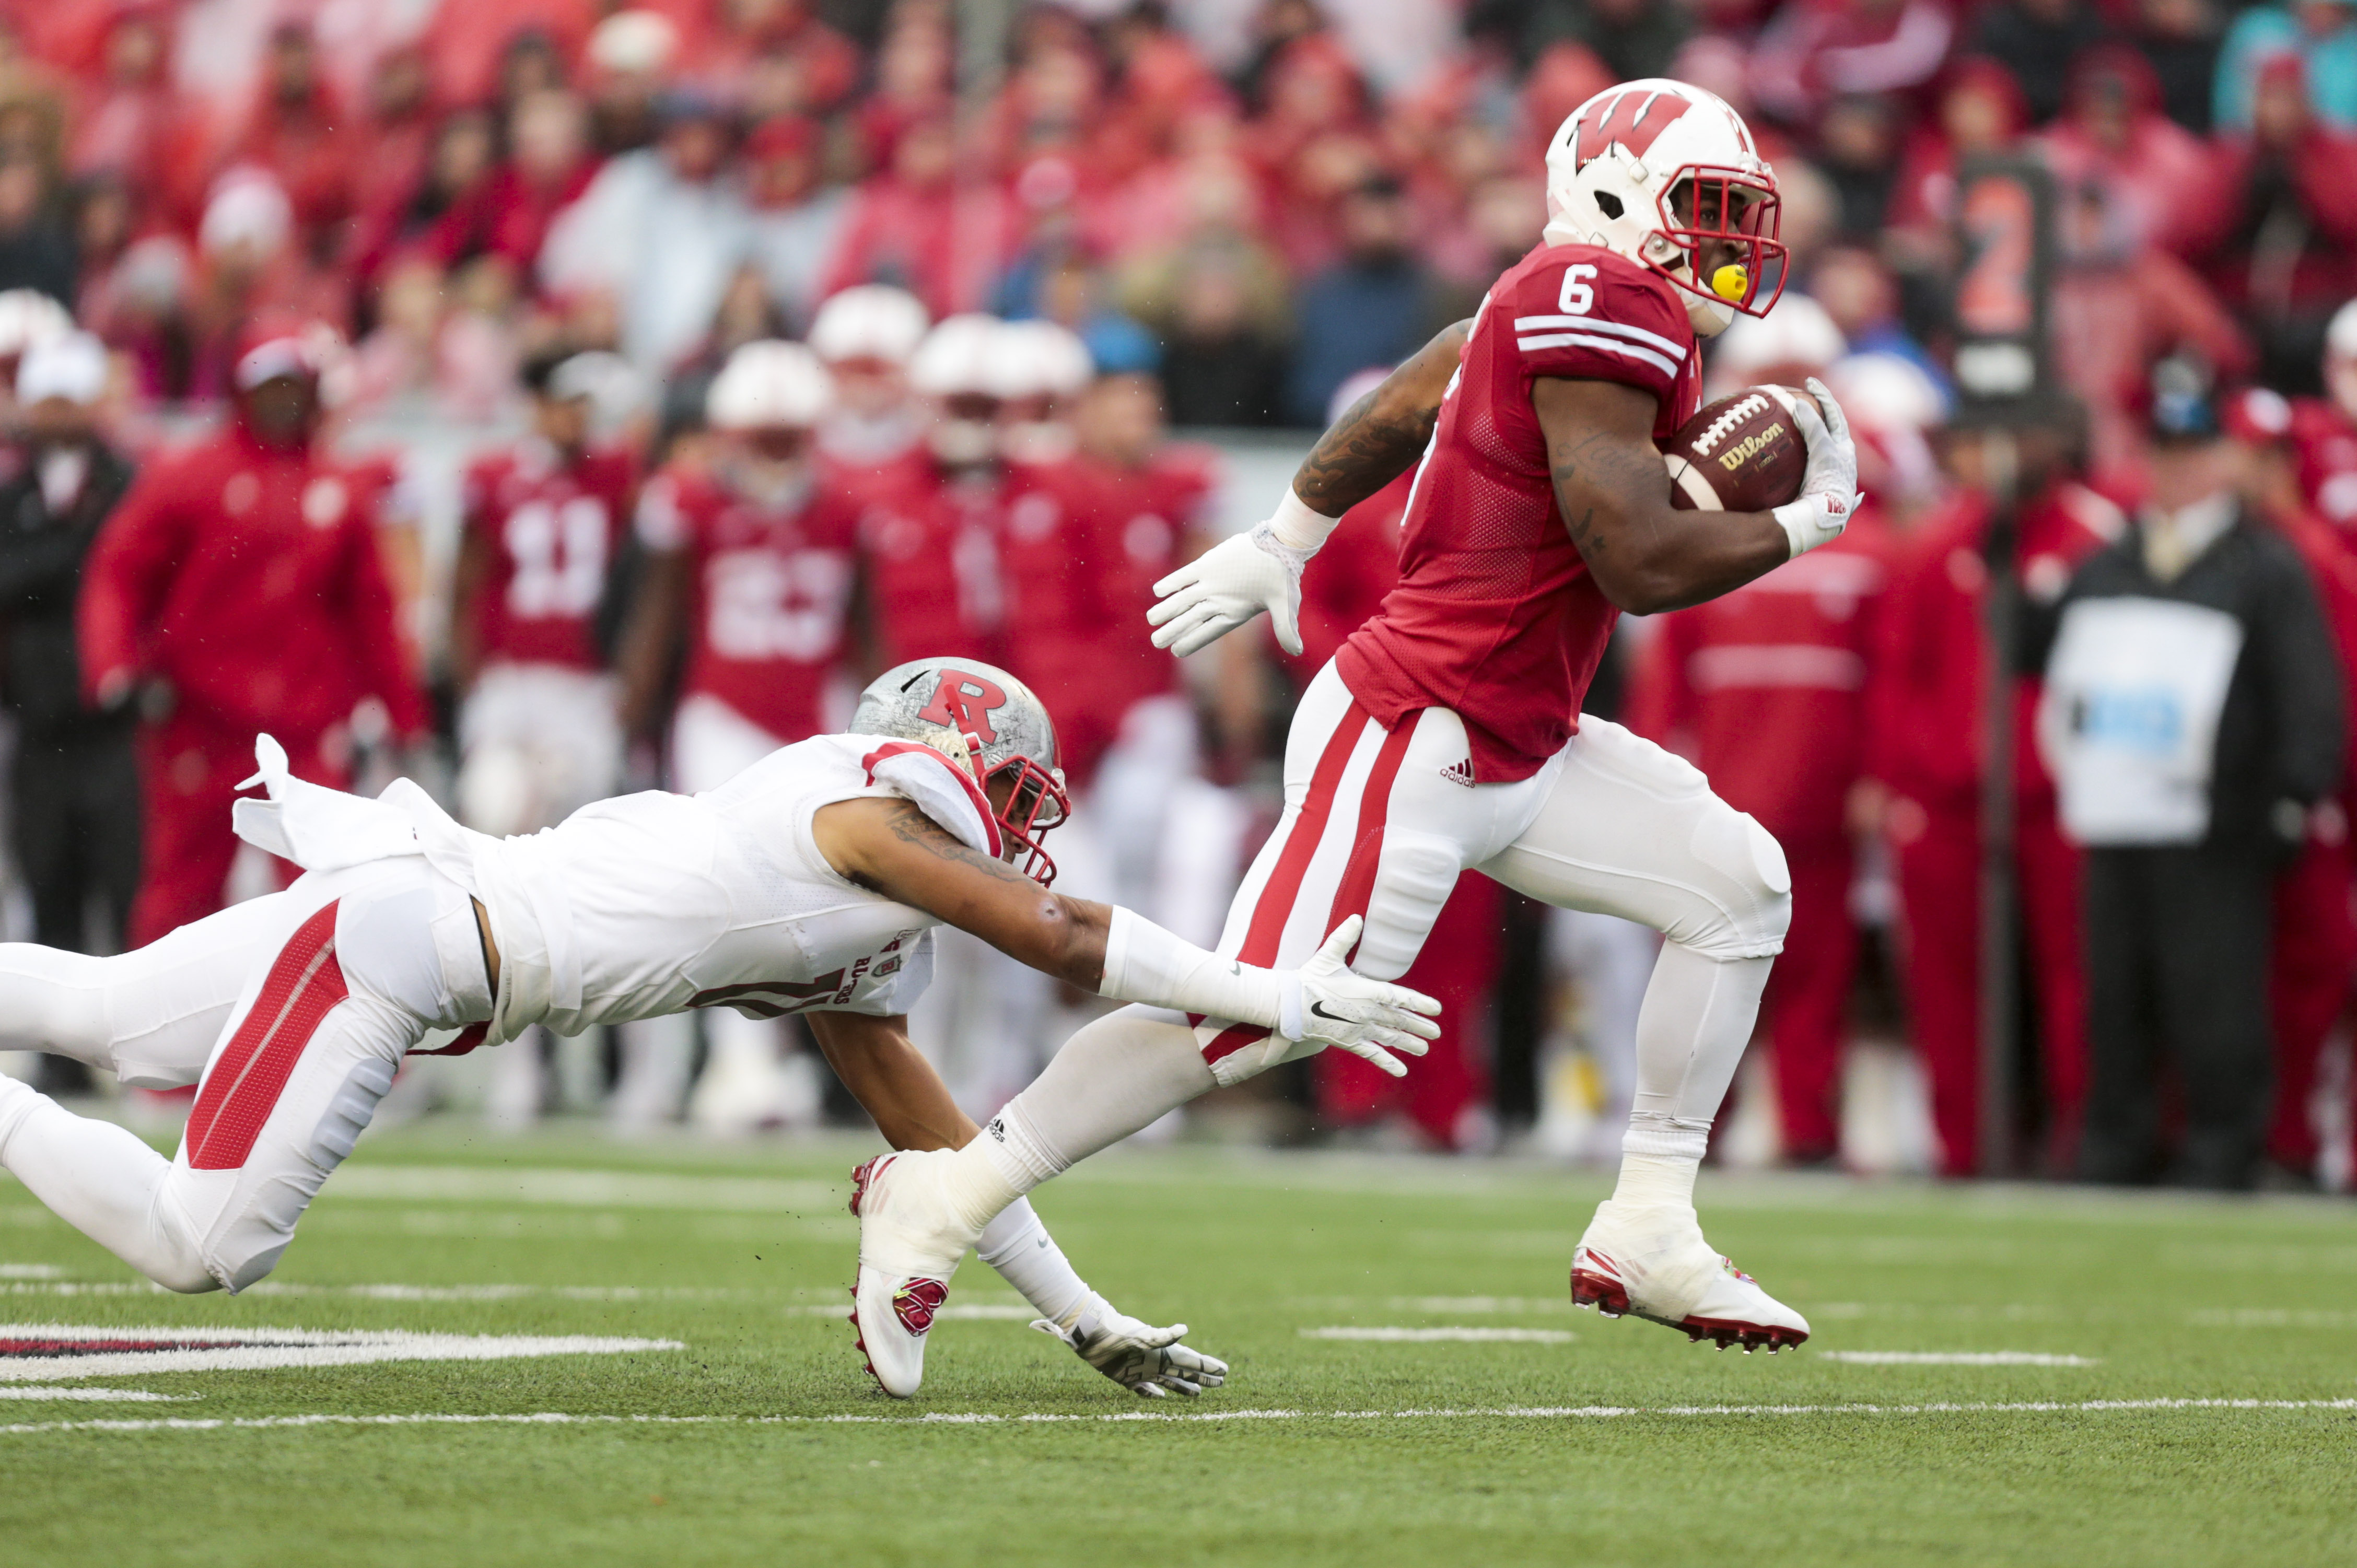 Wisconsin running back Corey Clement (6) runs for a first down past Rutgers defensive back Isaiah Wharton (11) during the second half of an NCAA college football game, Saturday, Oct. 31, 2015, in Madison, Wis. Wisconsin 48-10. (AP Photo/Andy Manis)